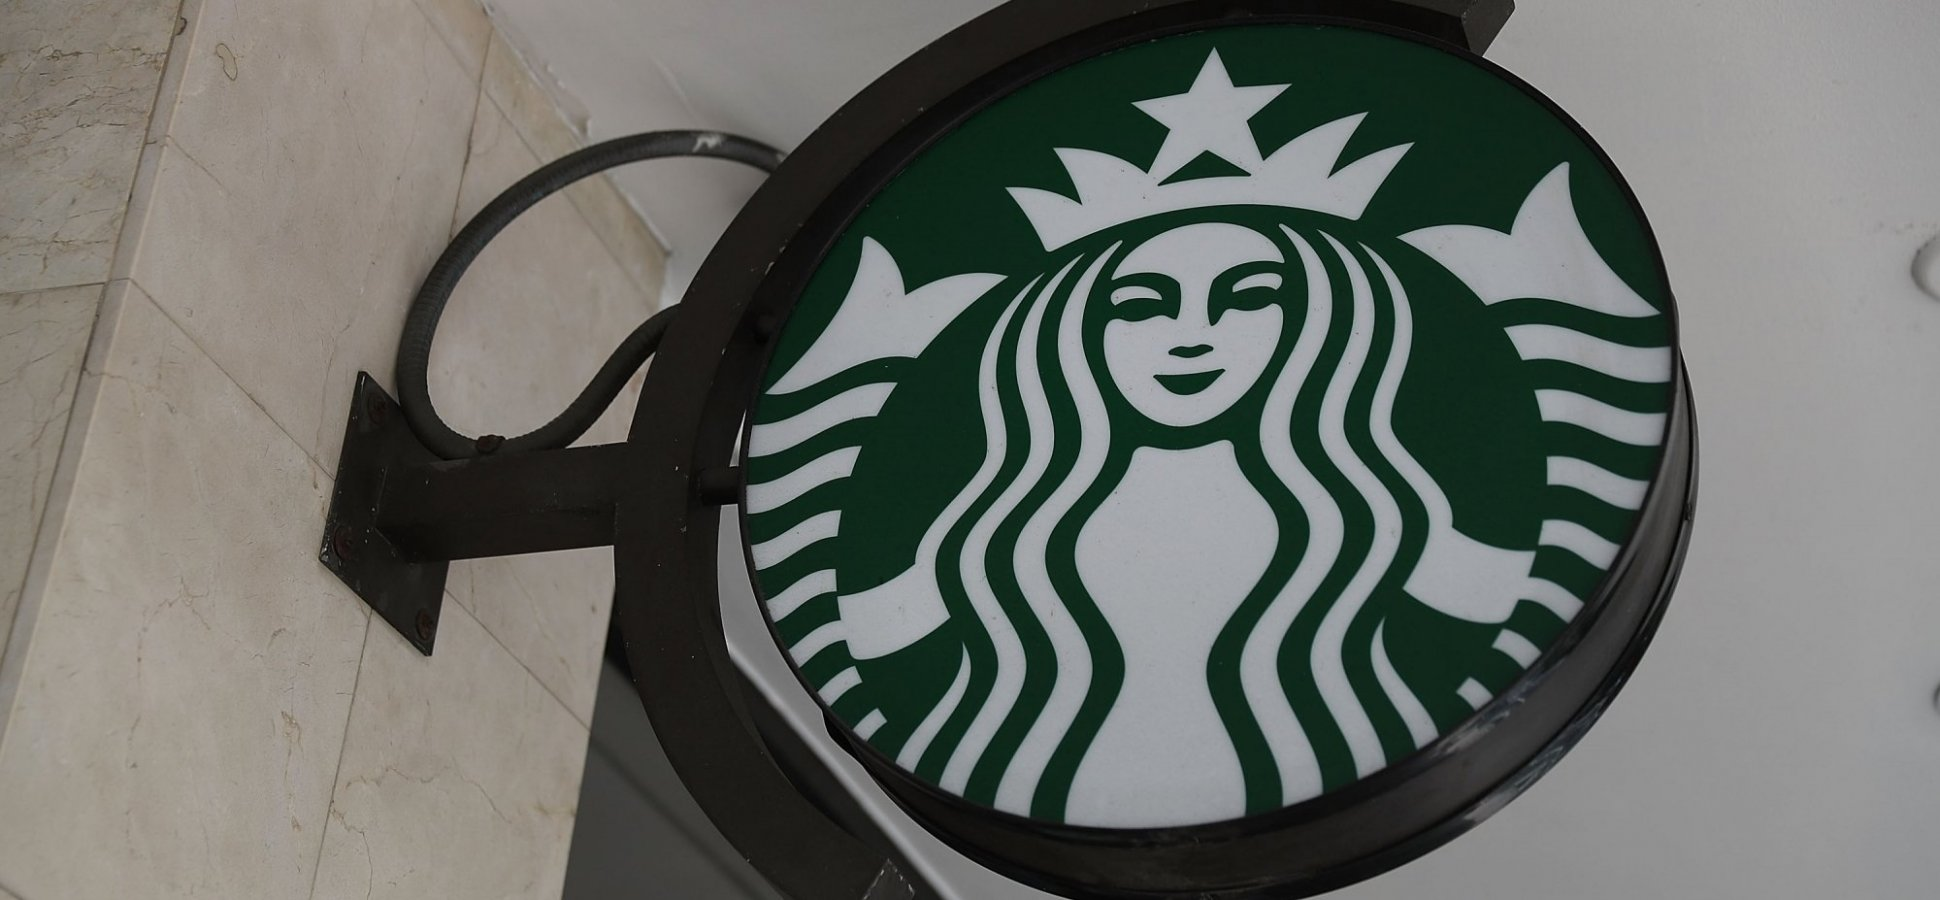 Starbucks Just Revealed a New Free Offer That Will Make Some Loyal Customers Very Happy